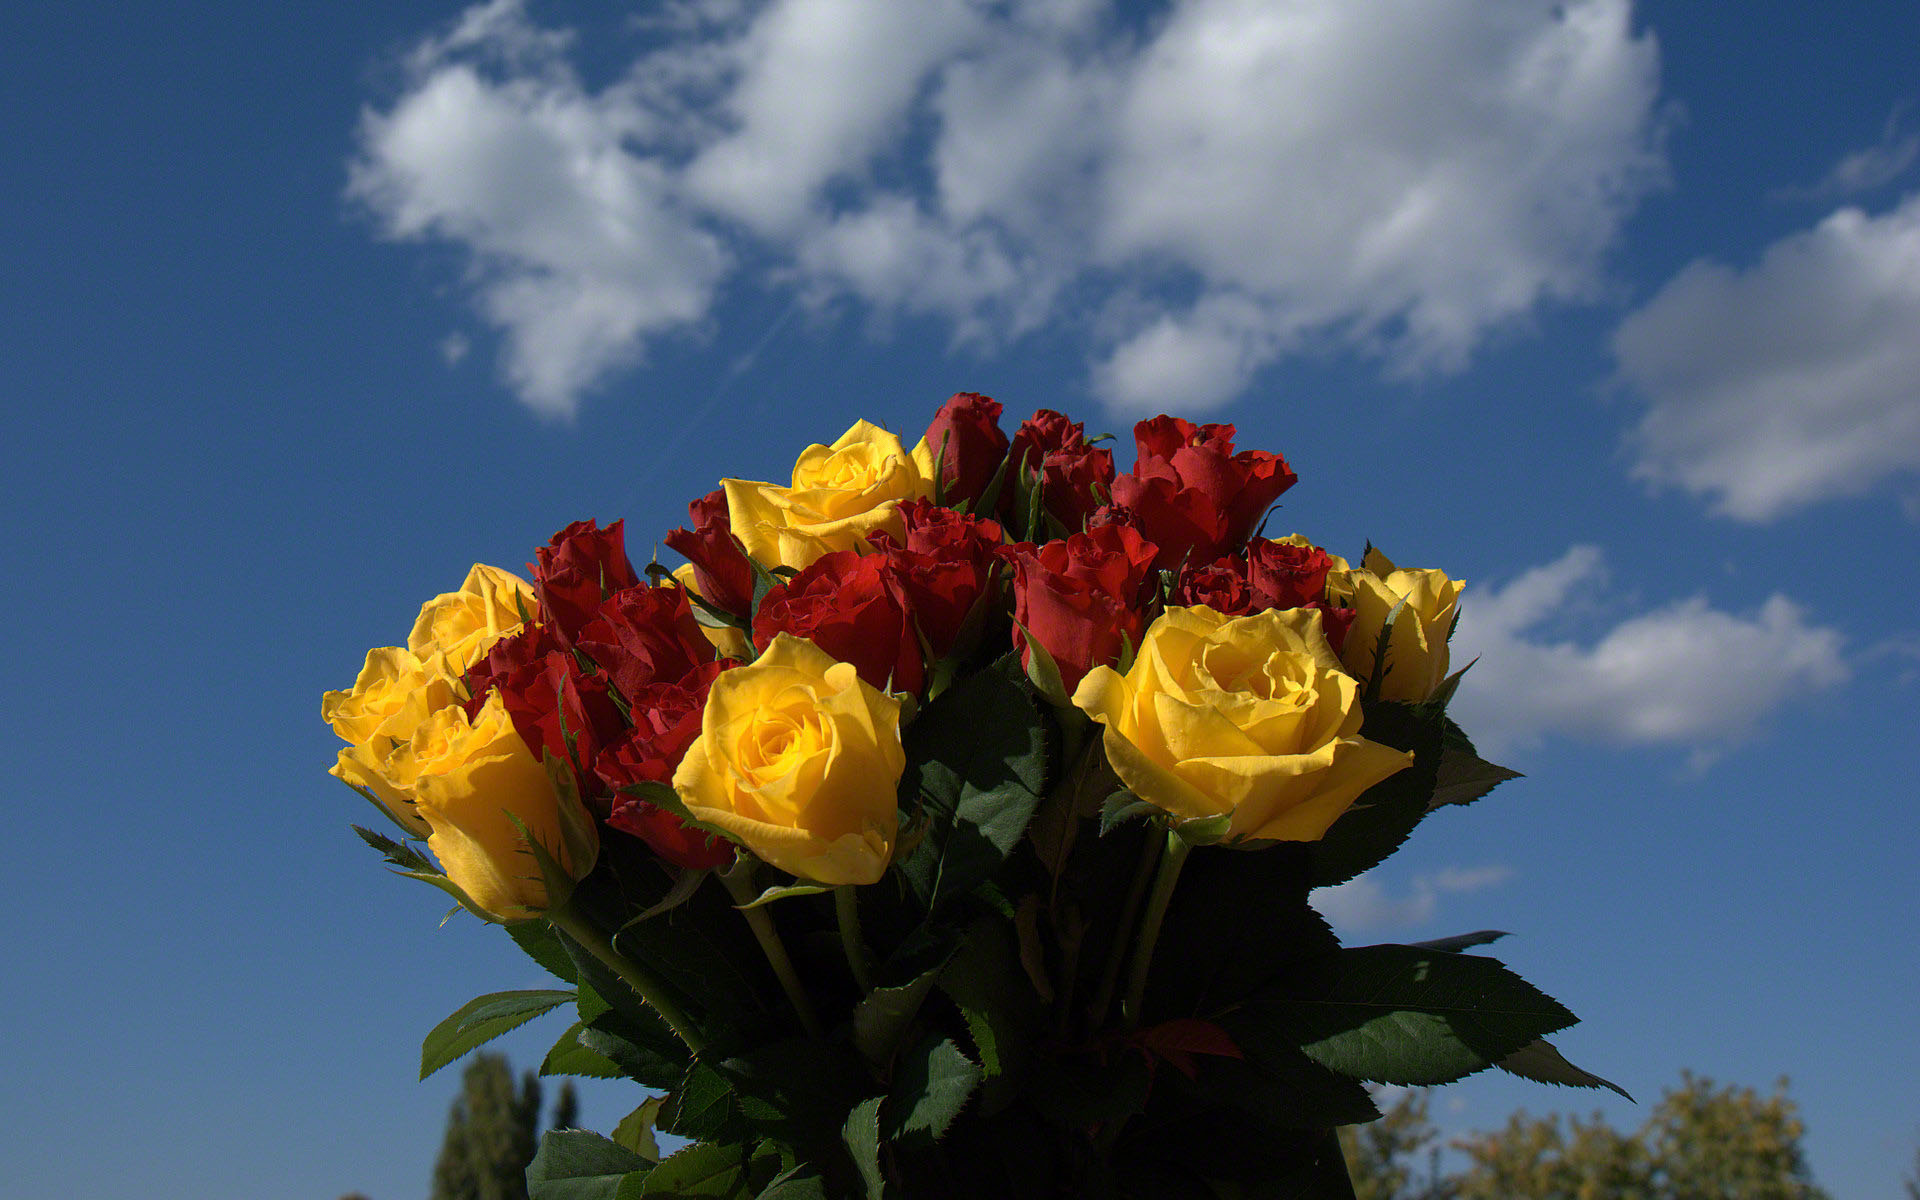 bouquet wallpapers, photos and desktop backgrounds up to ...